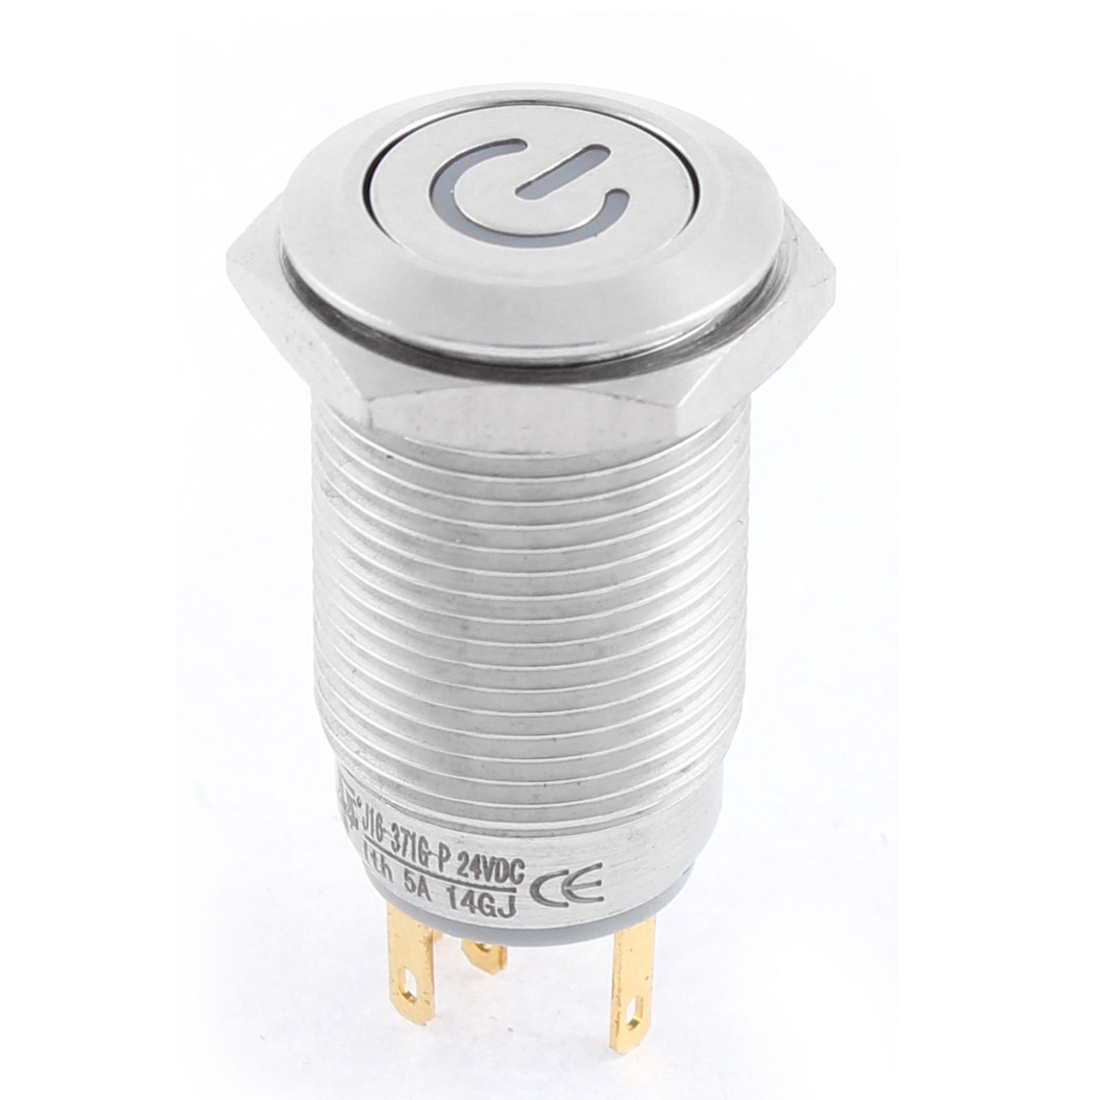 16mm stainless Steel Round Power Indicator LED Self Locking Push Button Switch DC 24V